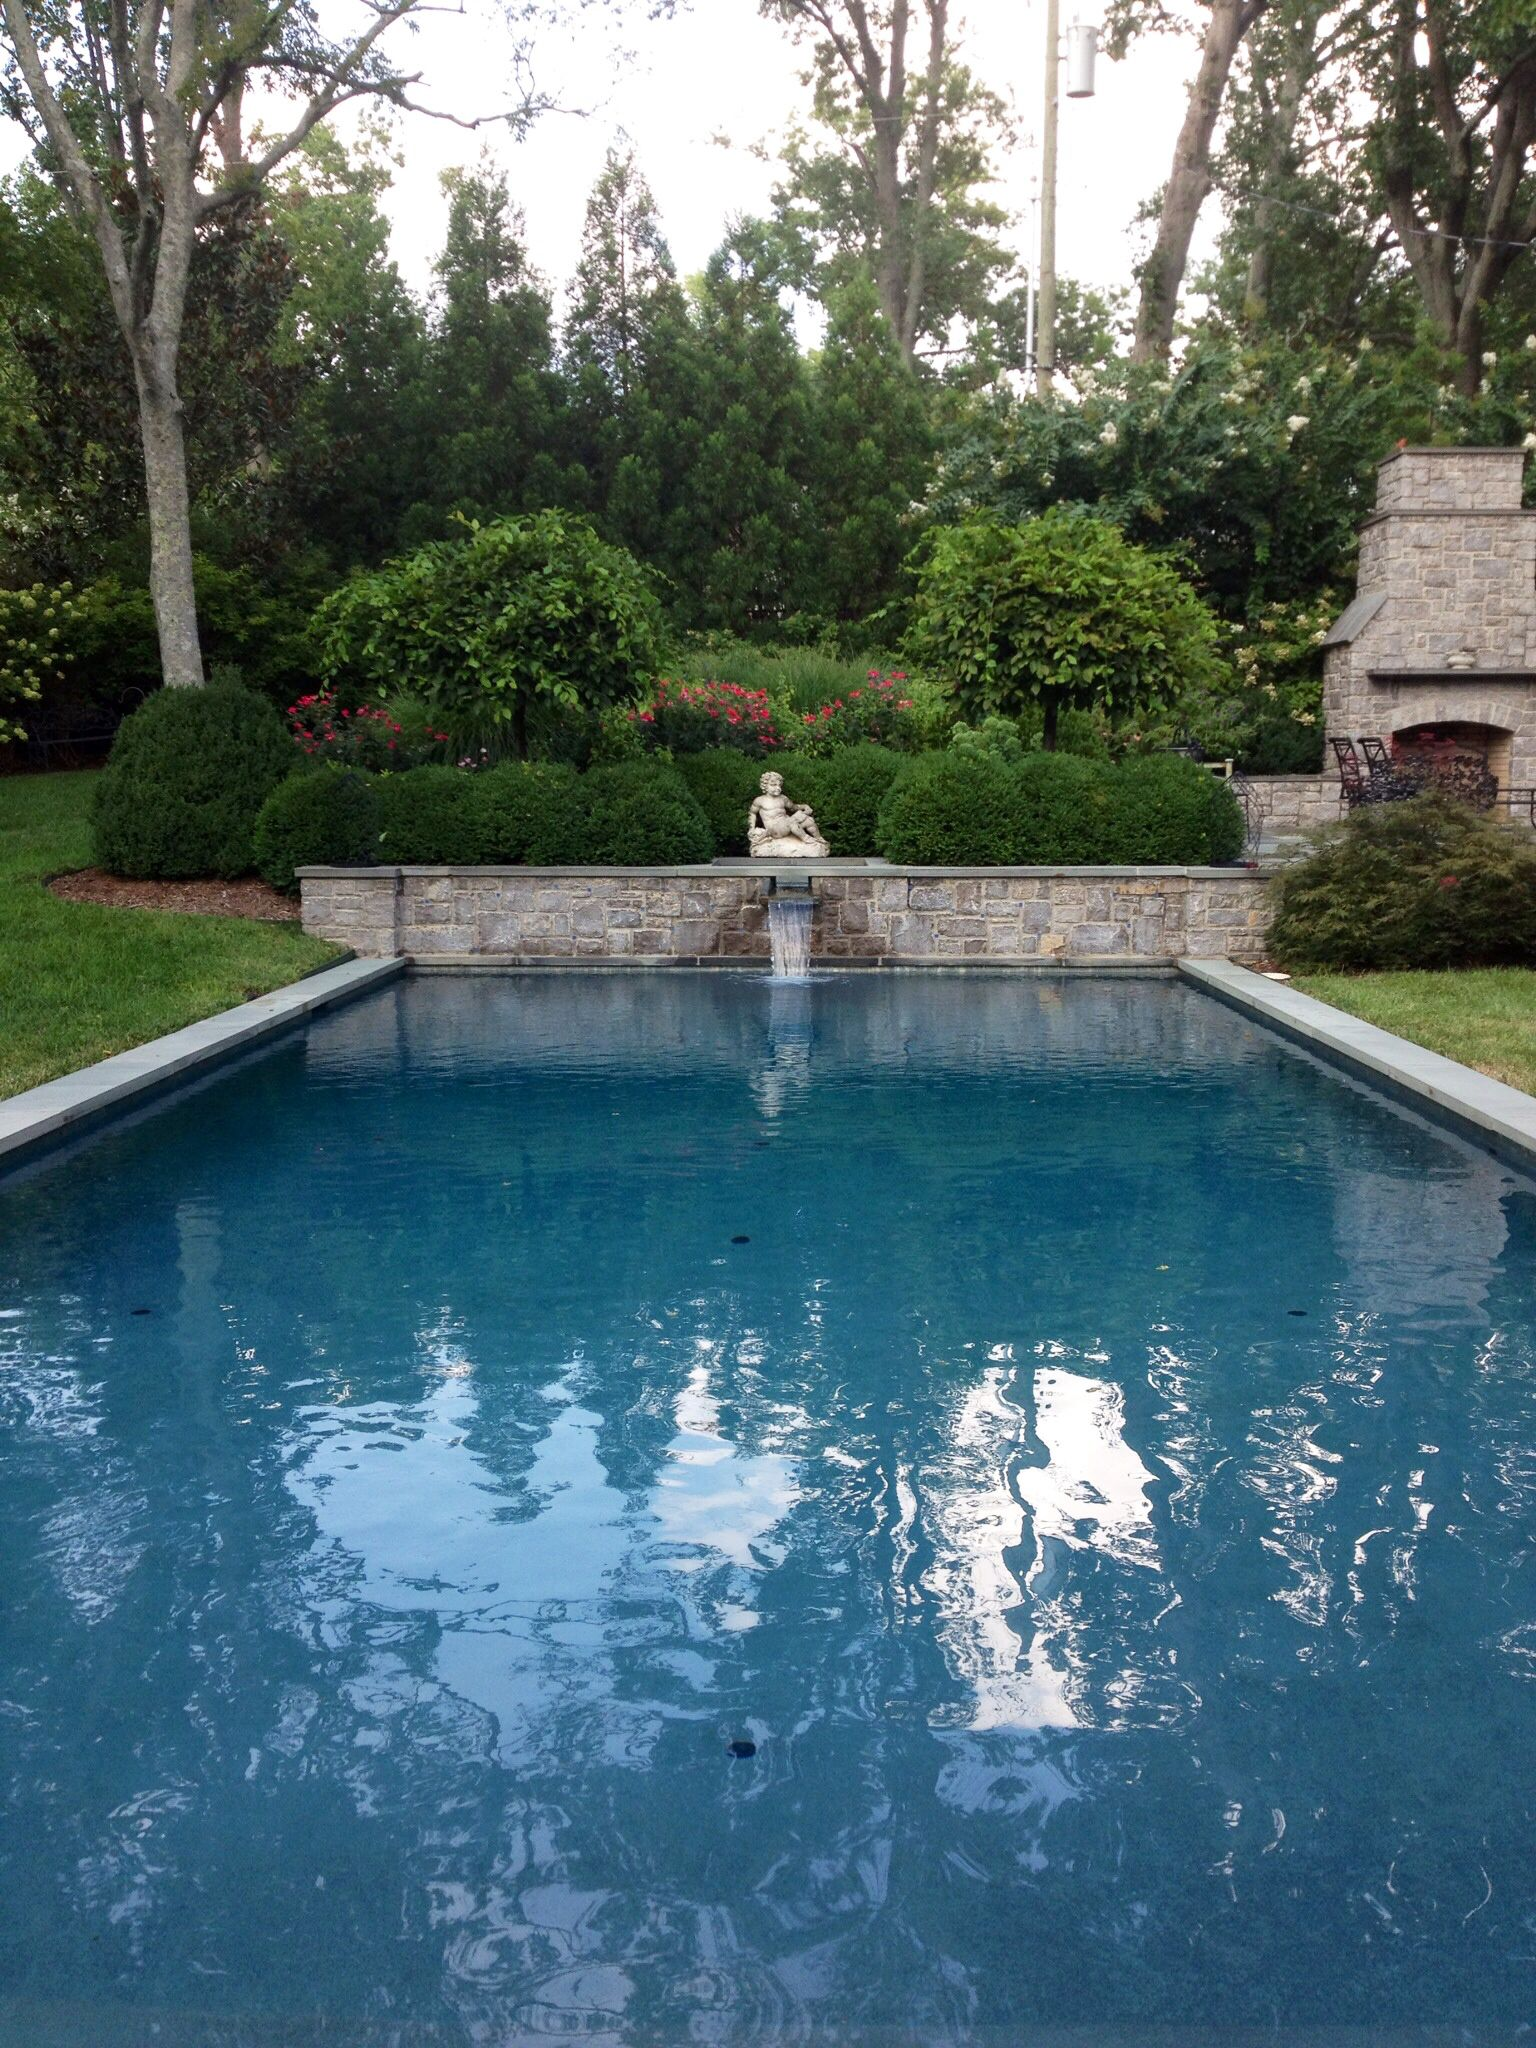 Mediterranean blue pool with stone scupper.